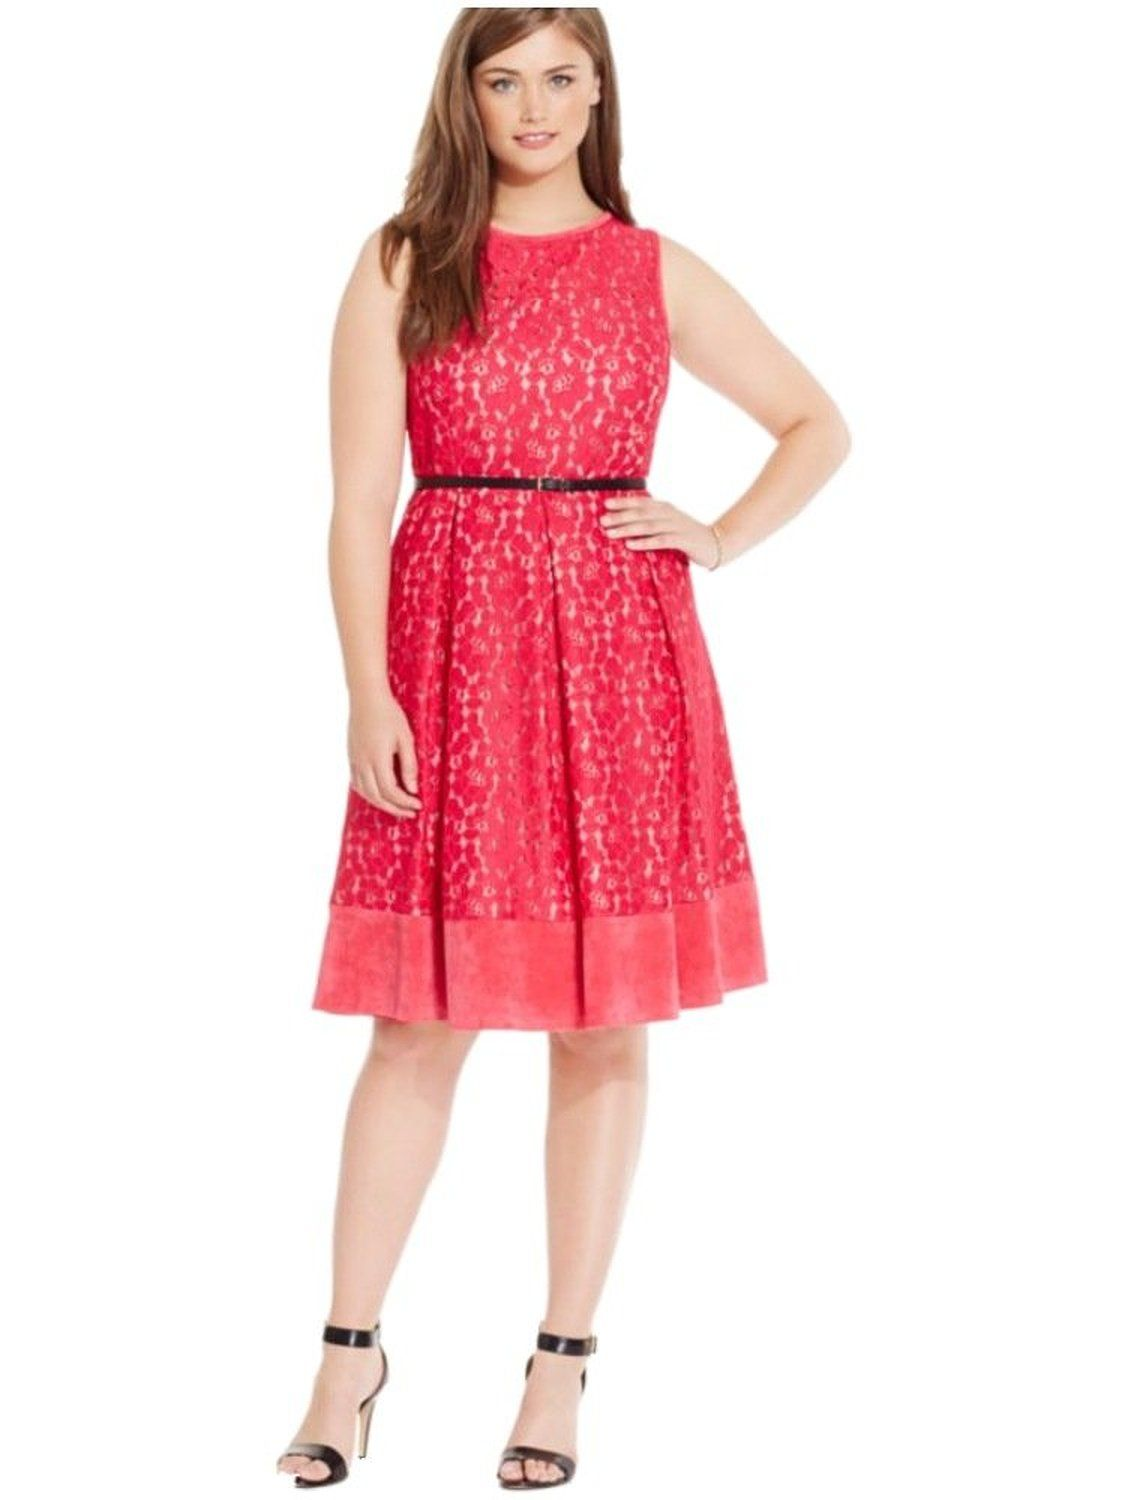 Red lace dress plus size  Amazon Calvin Klein PLUS Winter Rose All Over Lace Aline